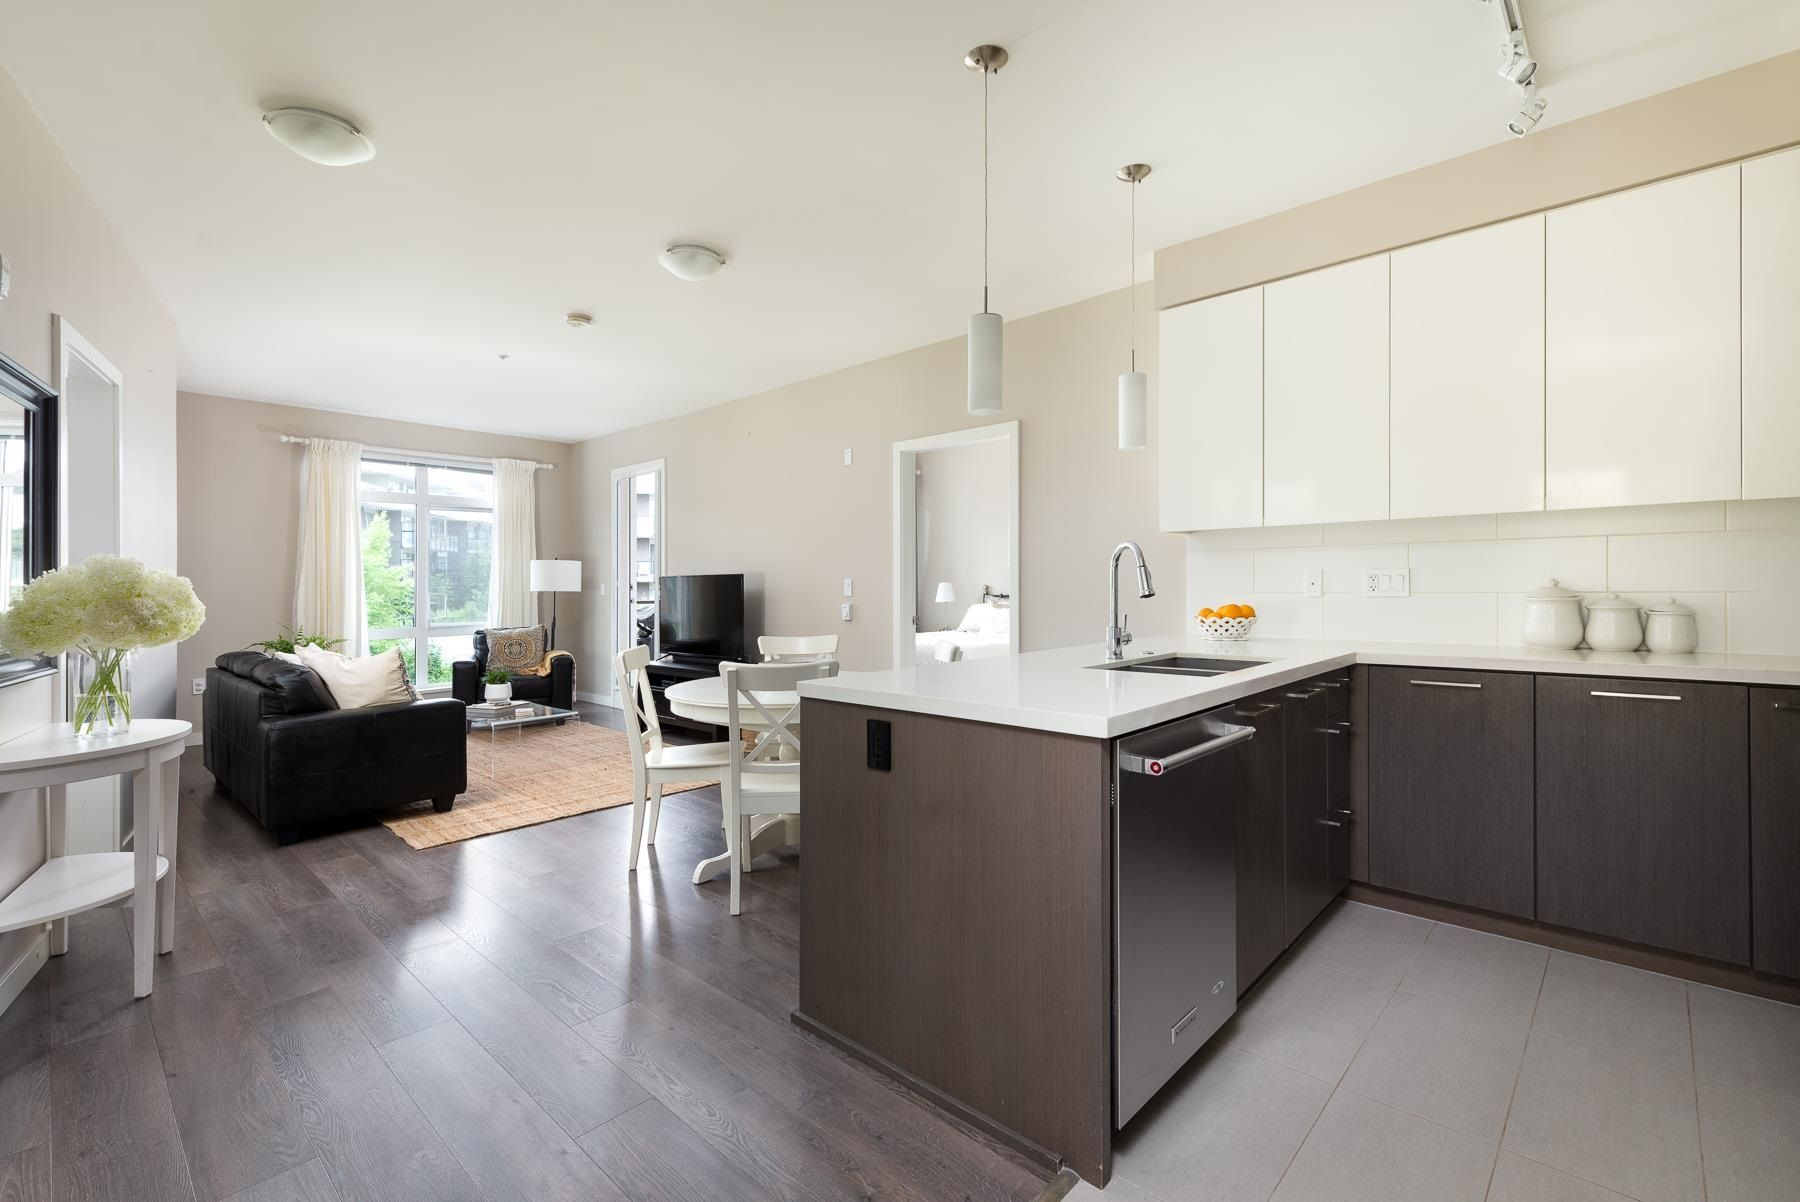 """Main Photo: 319 22 E ROYAL Avenue in New Westminster: Fraserview NW Condo for sale in """"THE LOOKOUT"""" : MLS®# R2601402"""